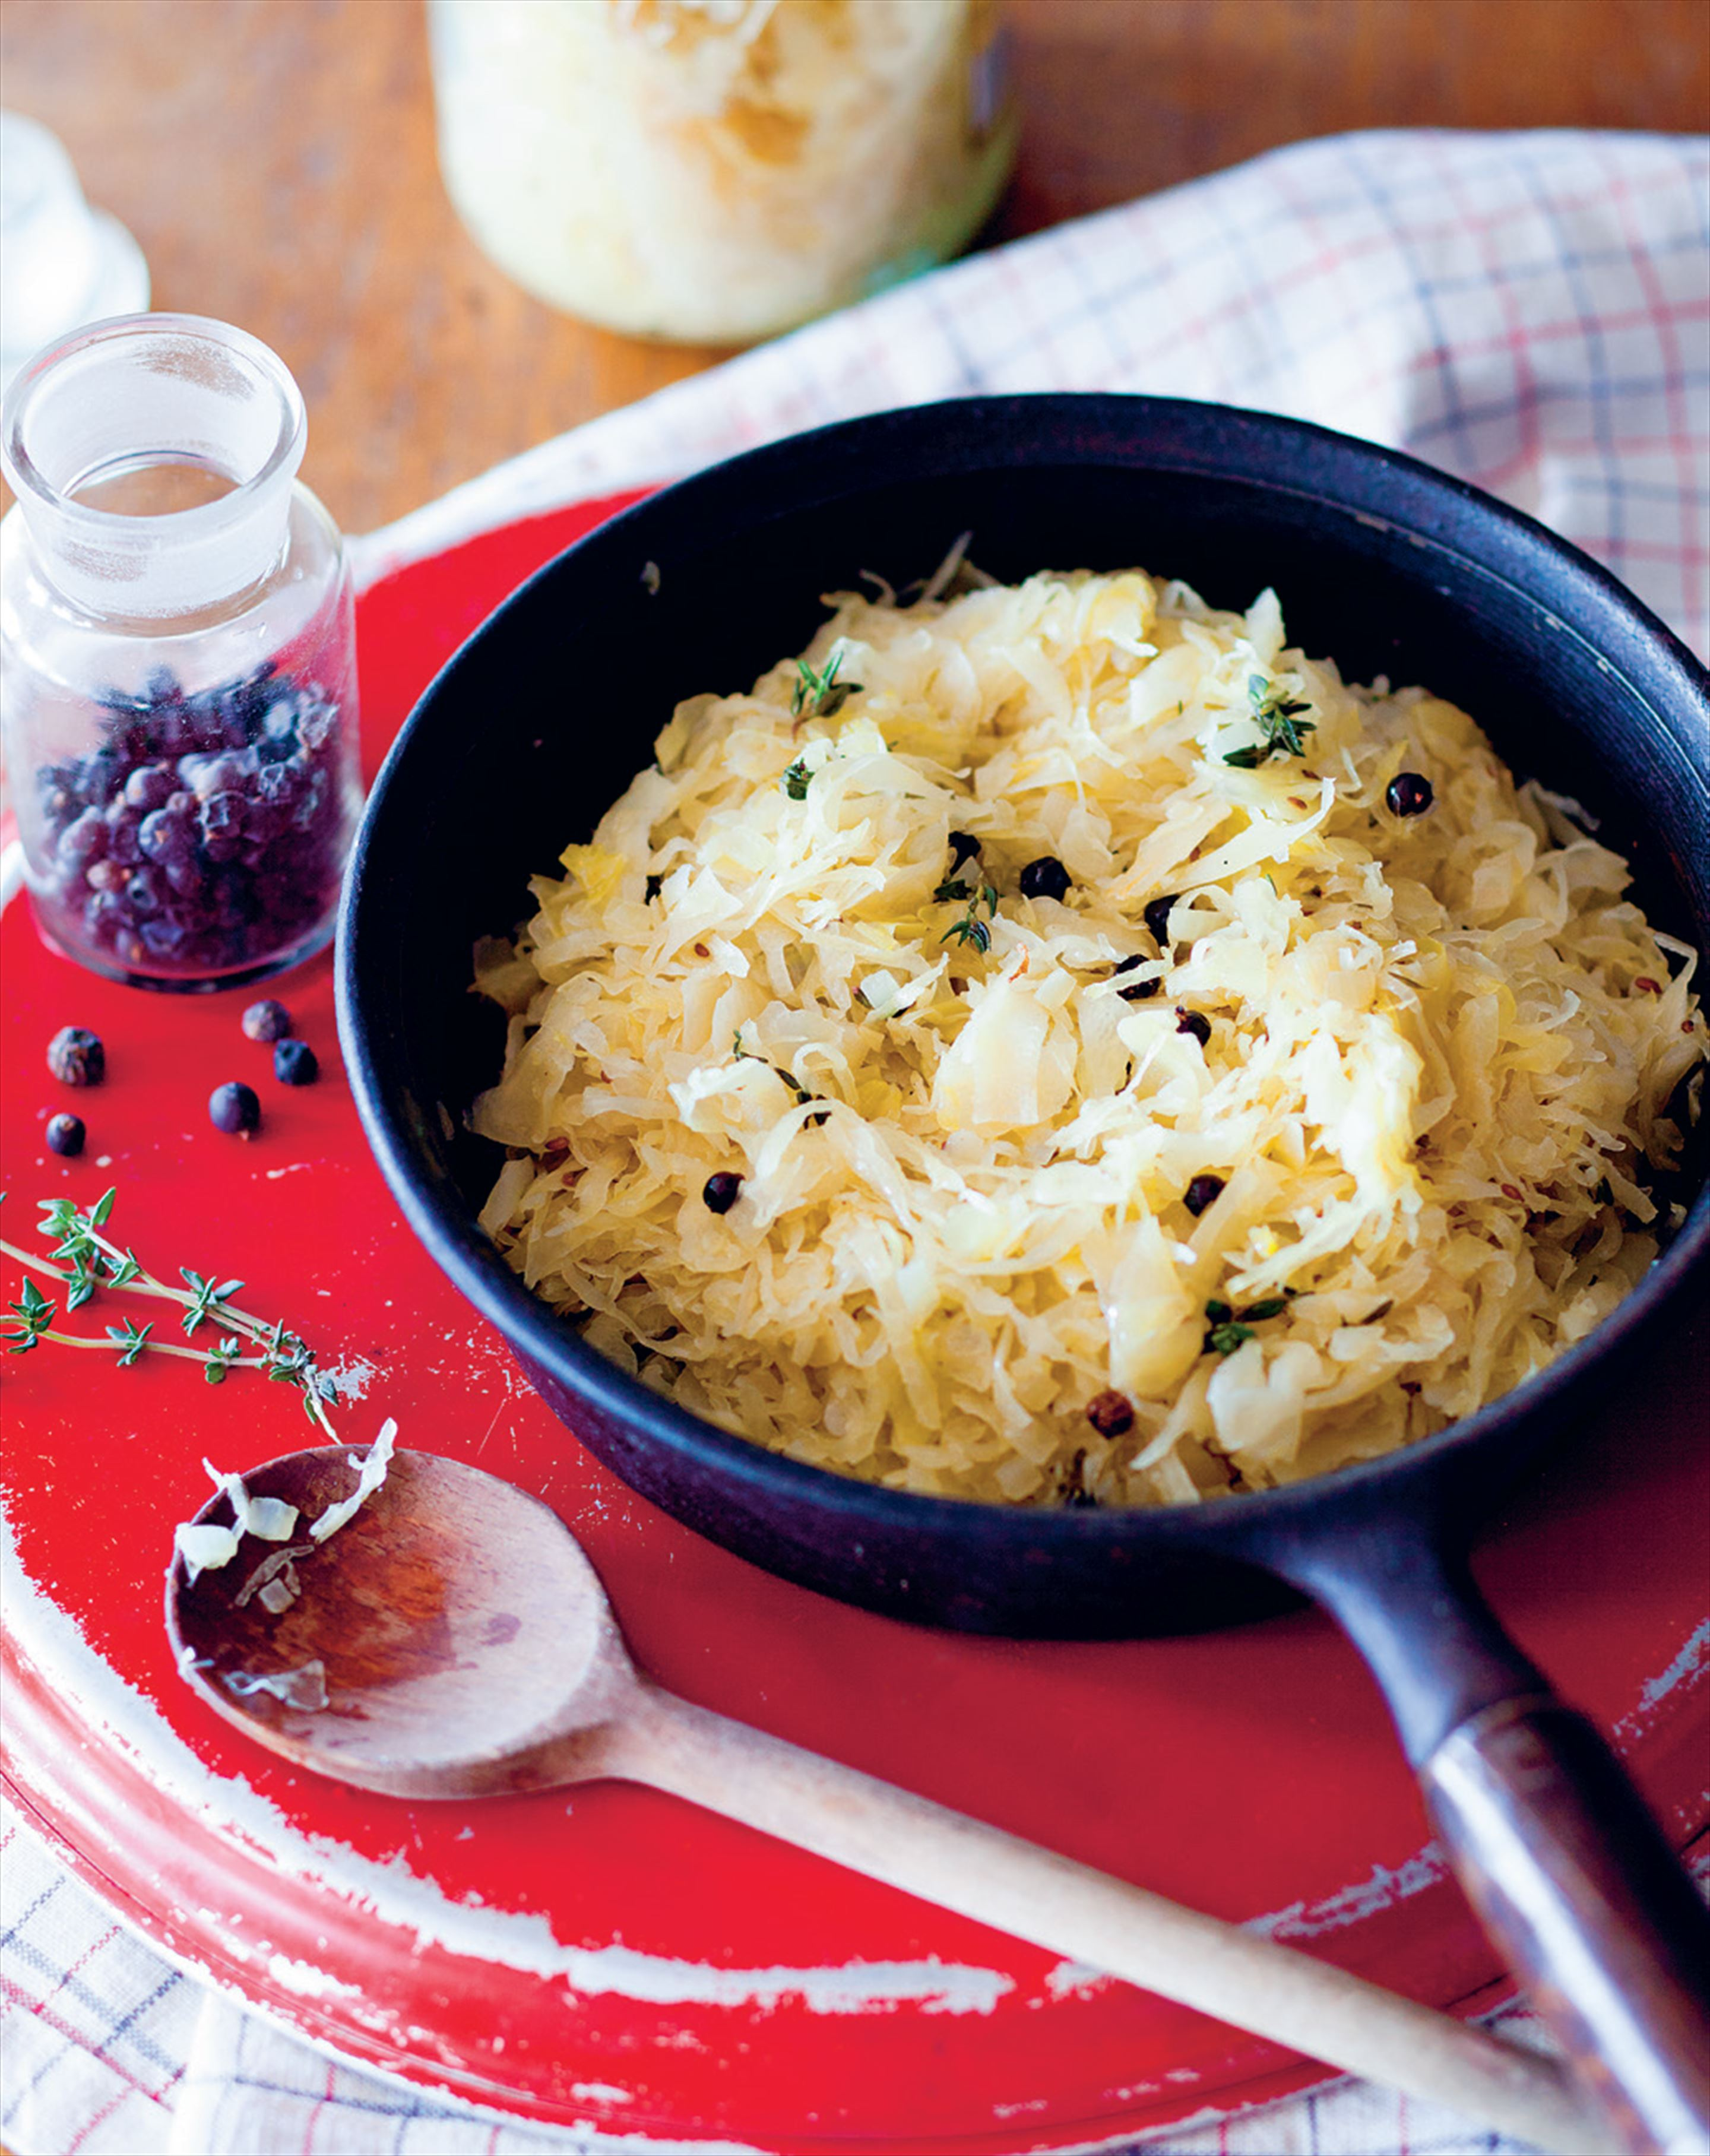 Sauerkraut stewed with juniper